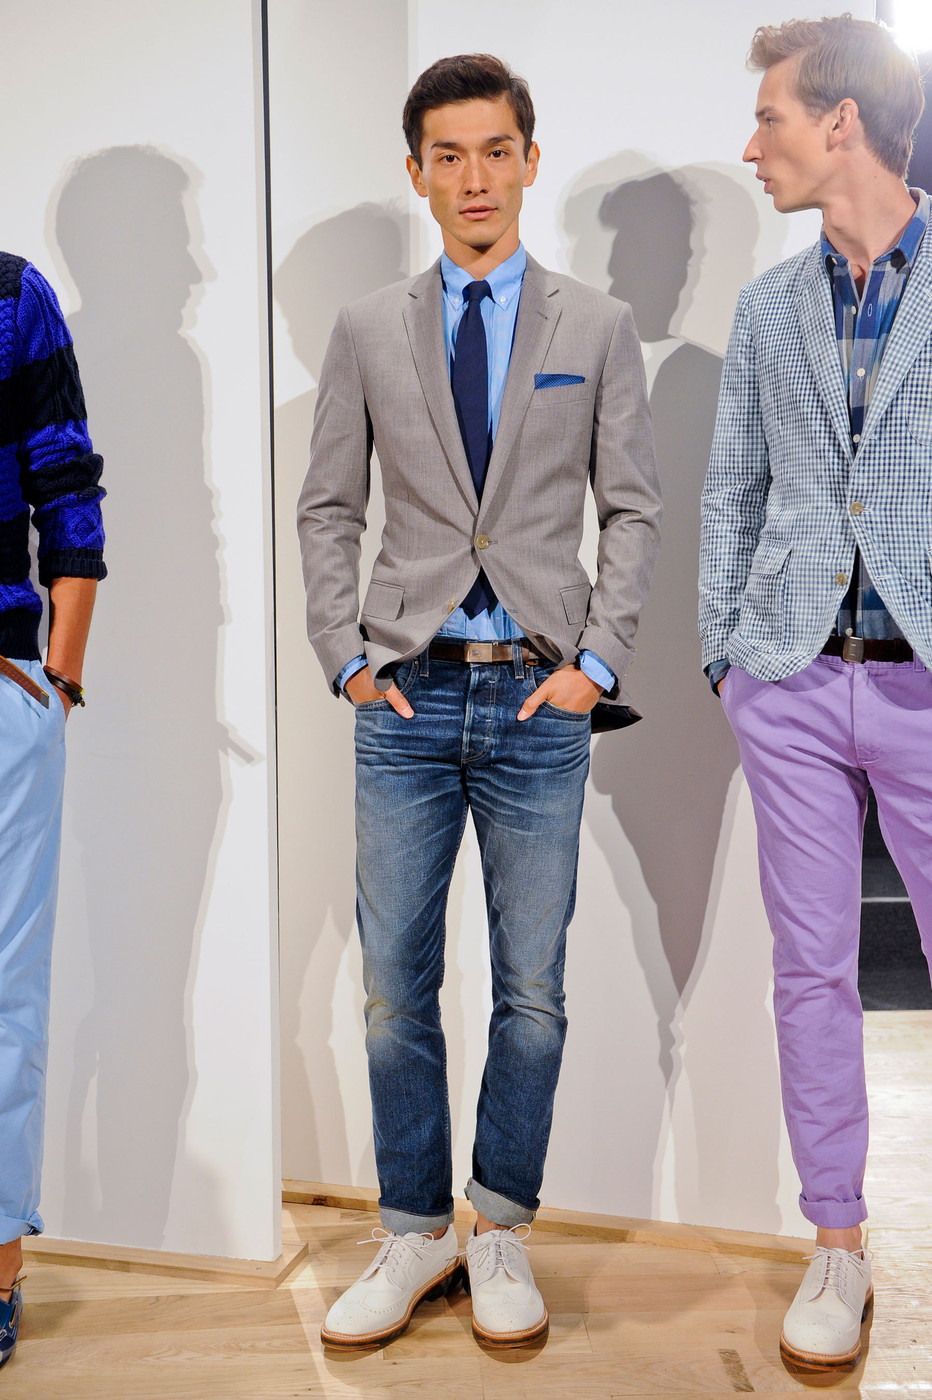 J crew mens at new york fashion week spring 2013 livingly for J crew mens outfits